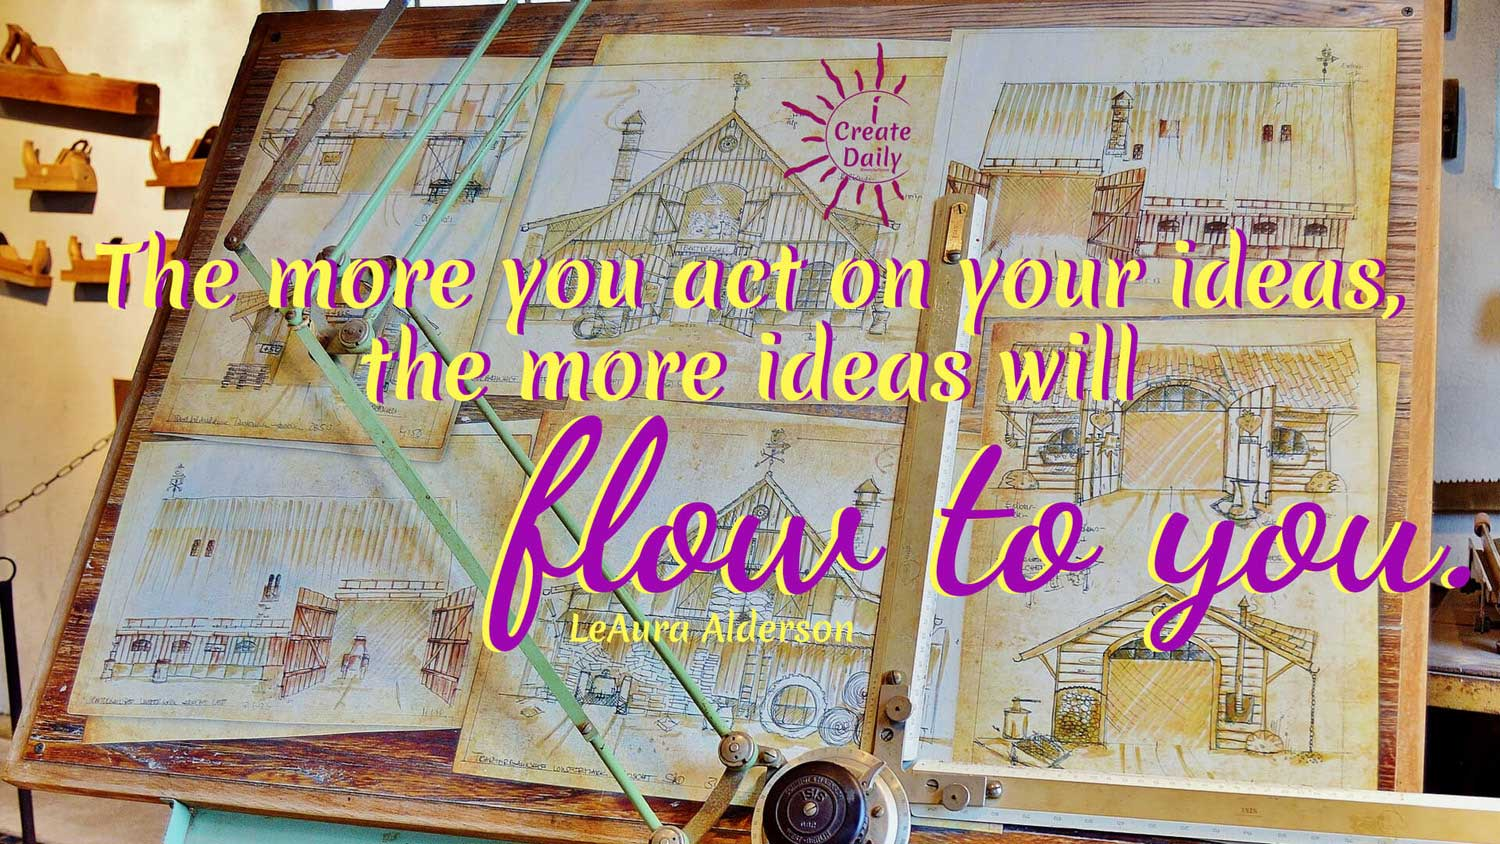 Act on your Ideas